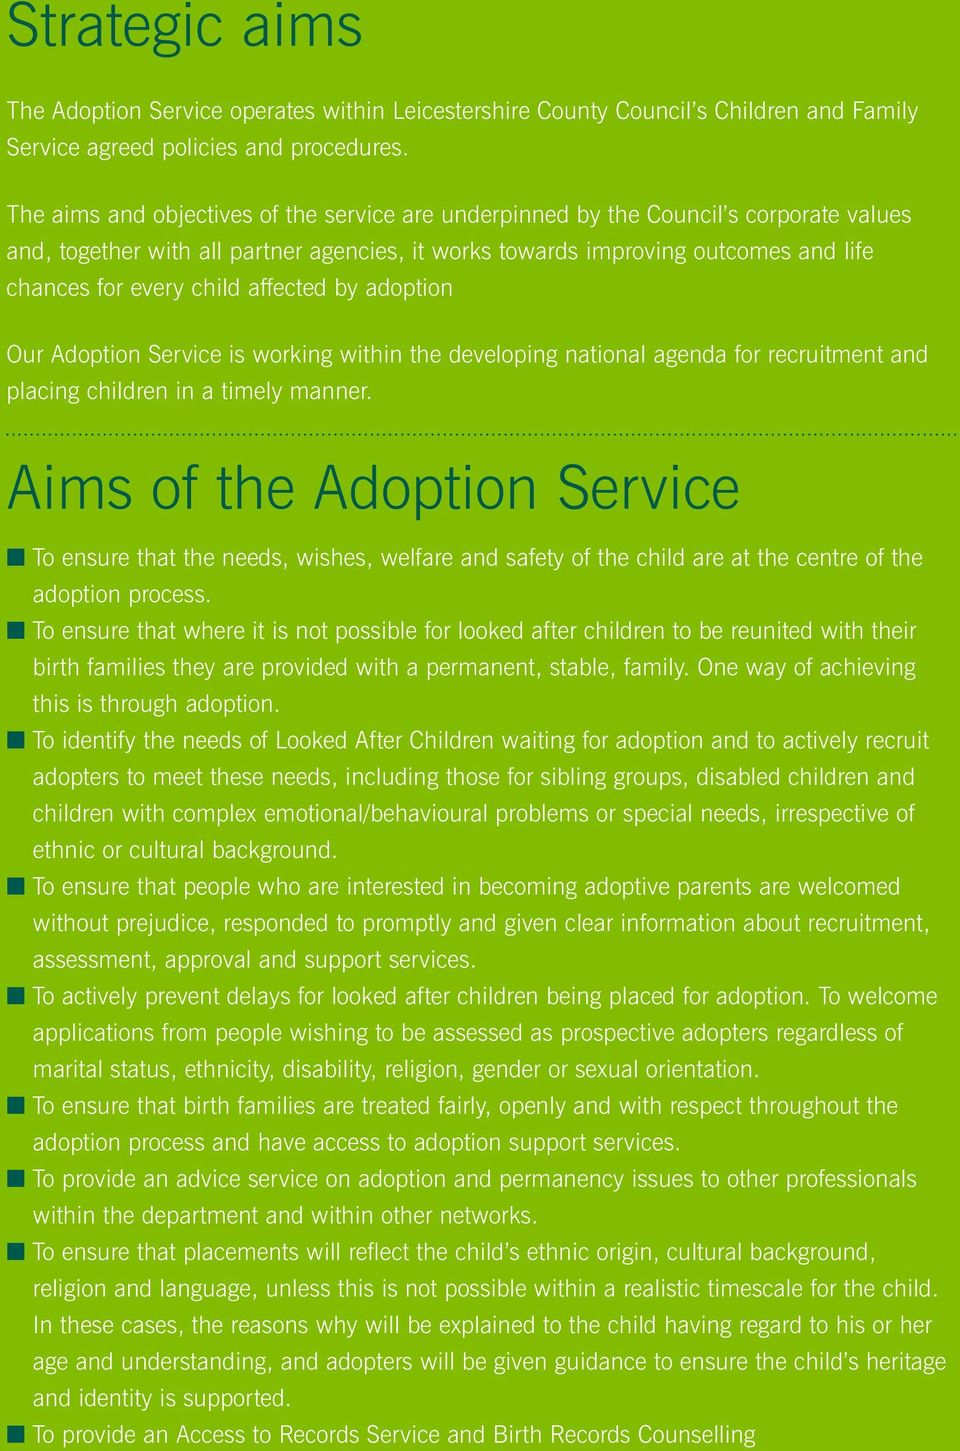 affected by adoption Our Adoption Service is working within the developing national agenda for recruitment and placing children in a timely manner.